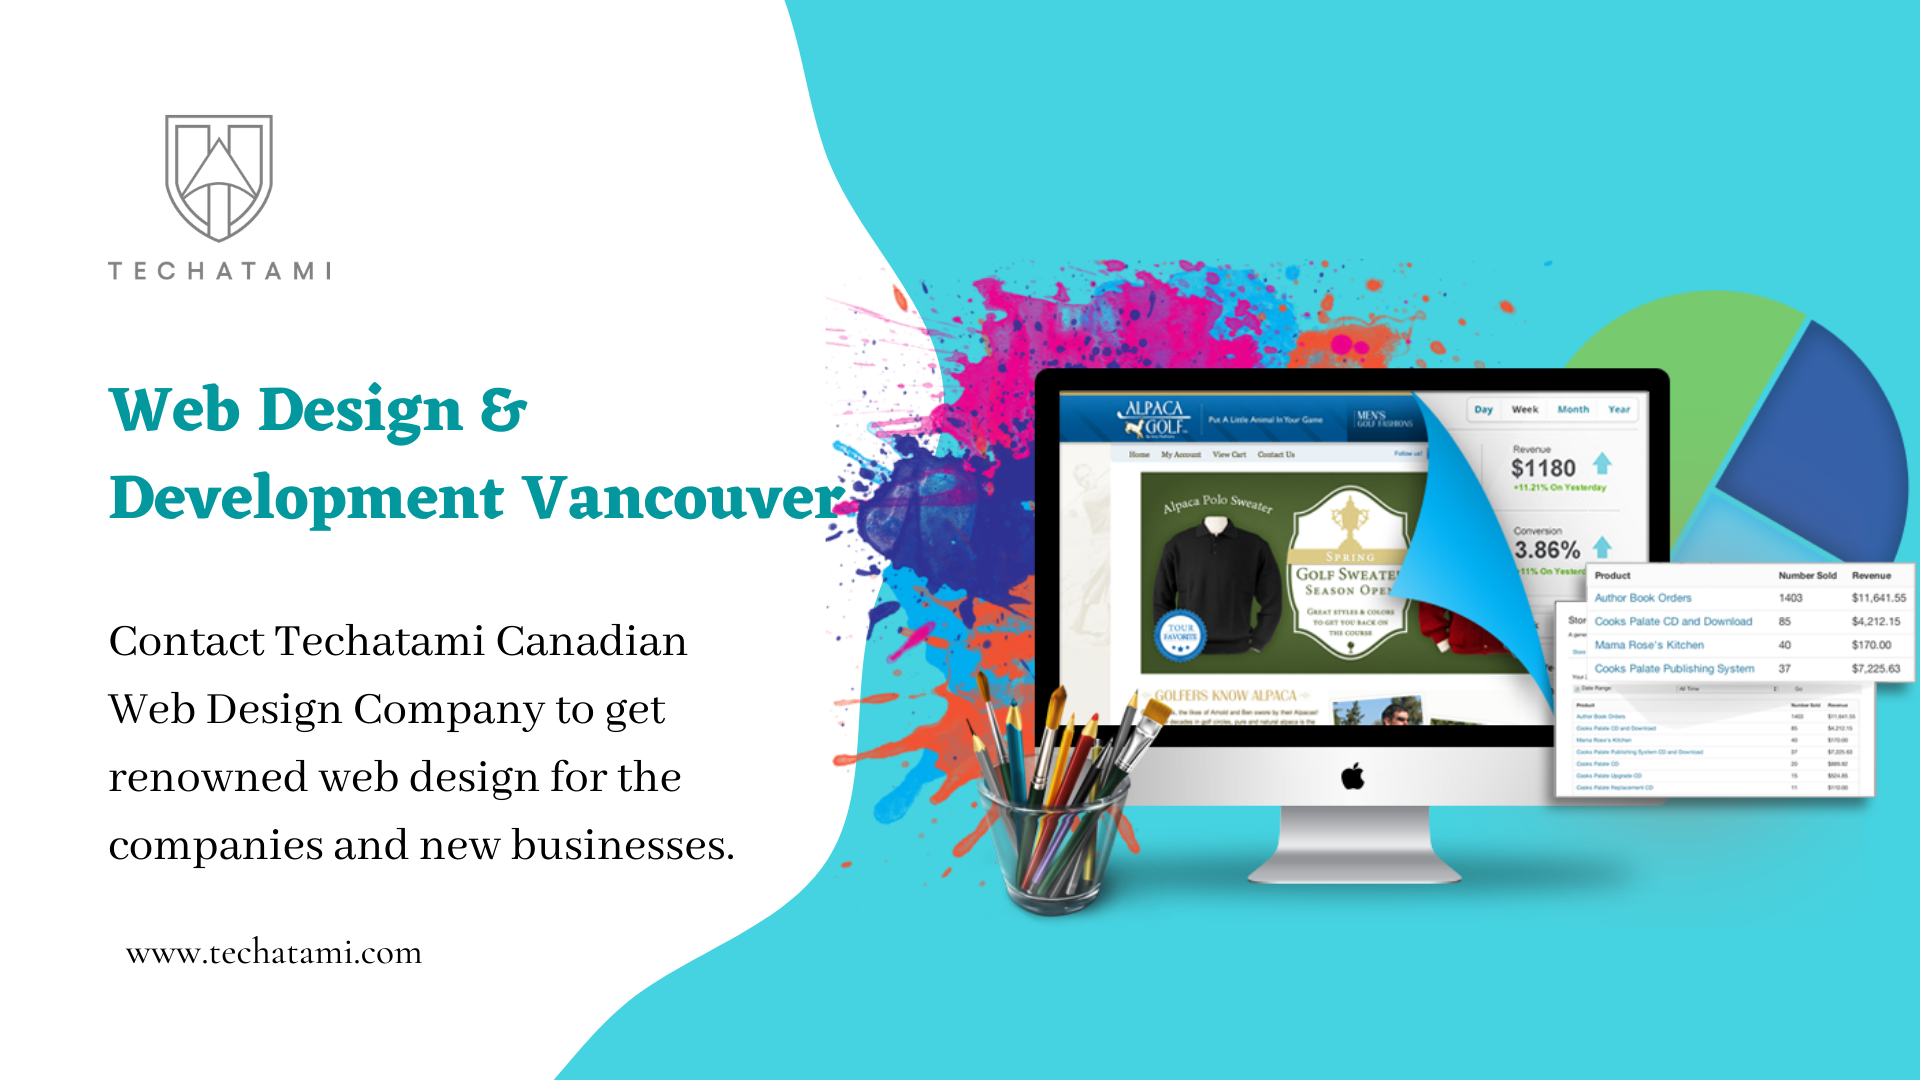 Reasons for hiring a Vancouver web design agency